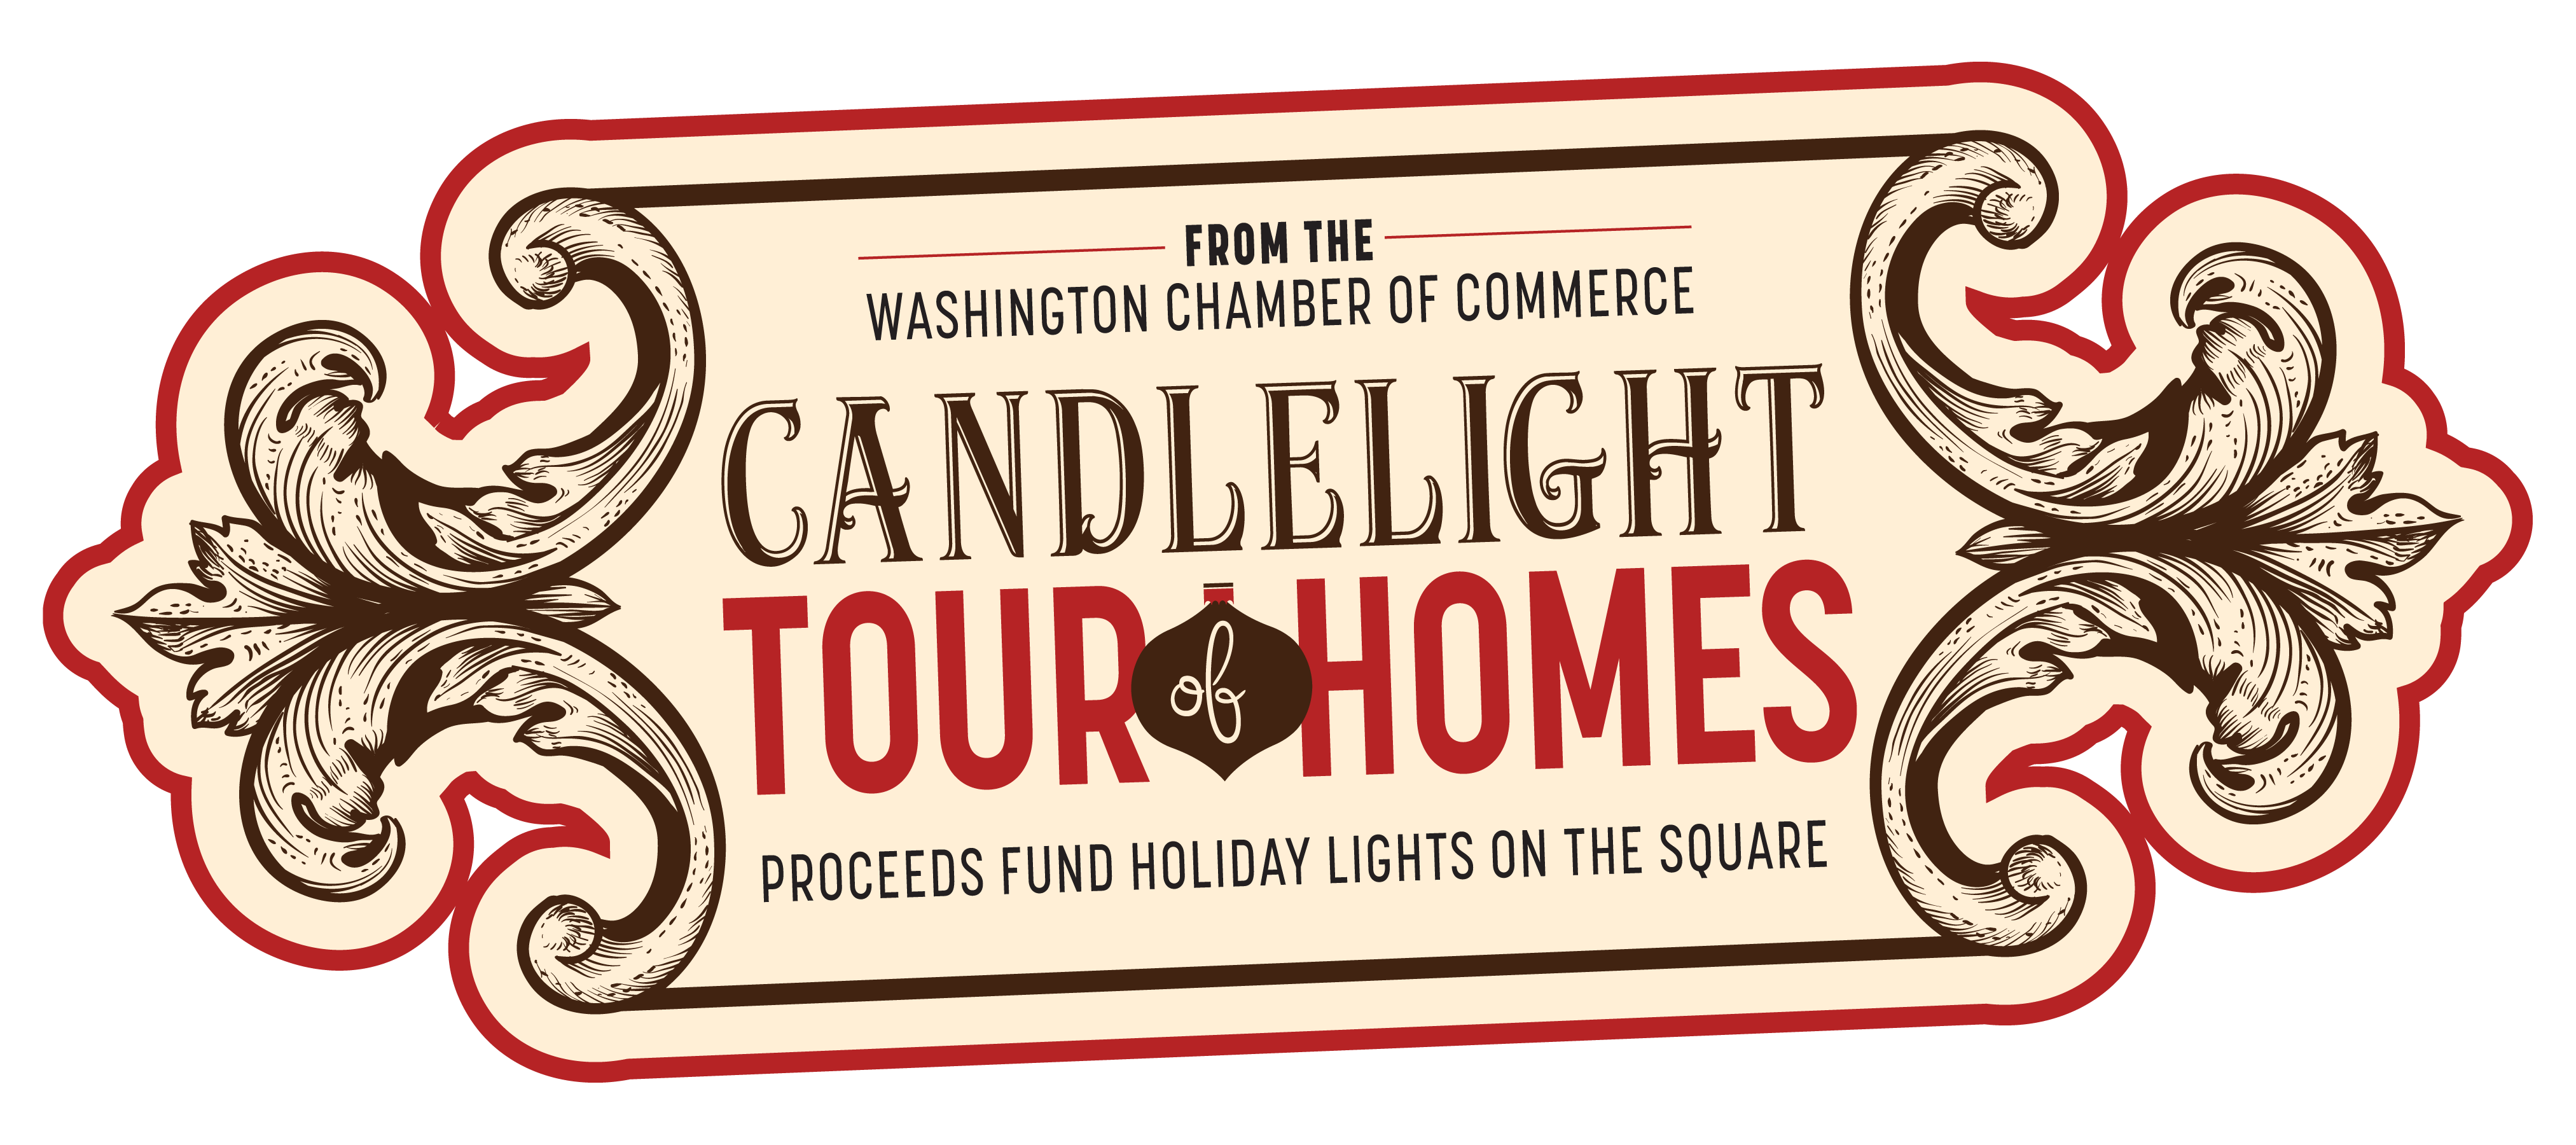 Washington Chamber of Commerce Candlelight Tour of Homes fundraiser